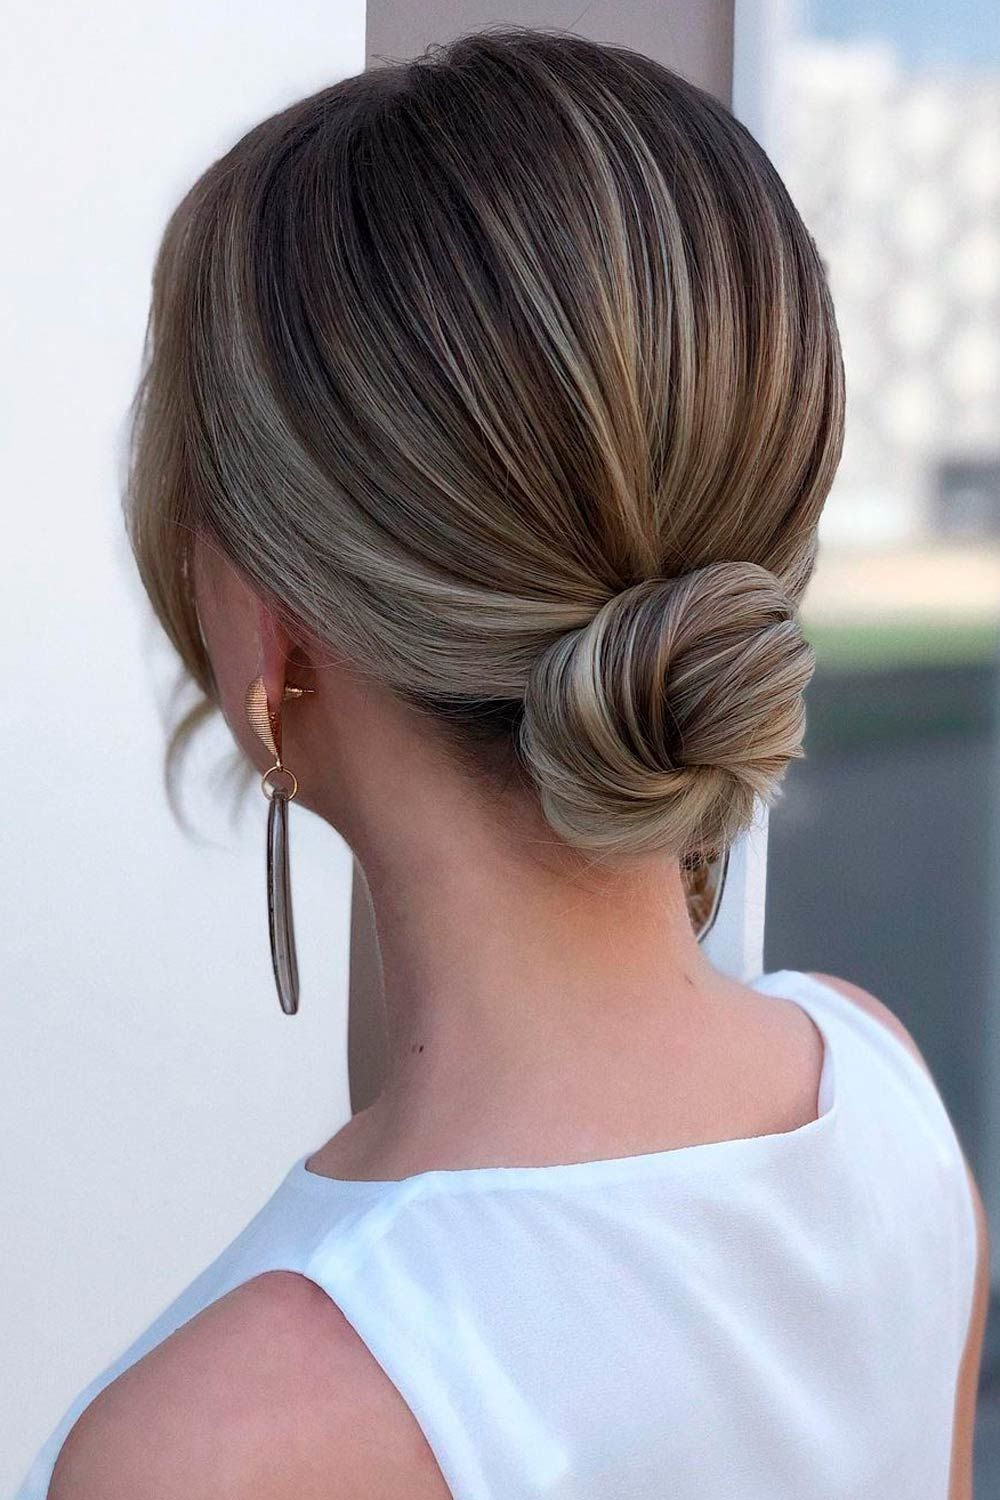 Simple Low Buns